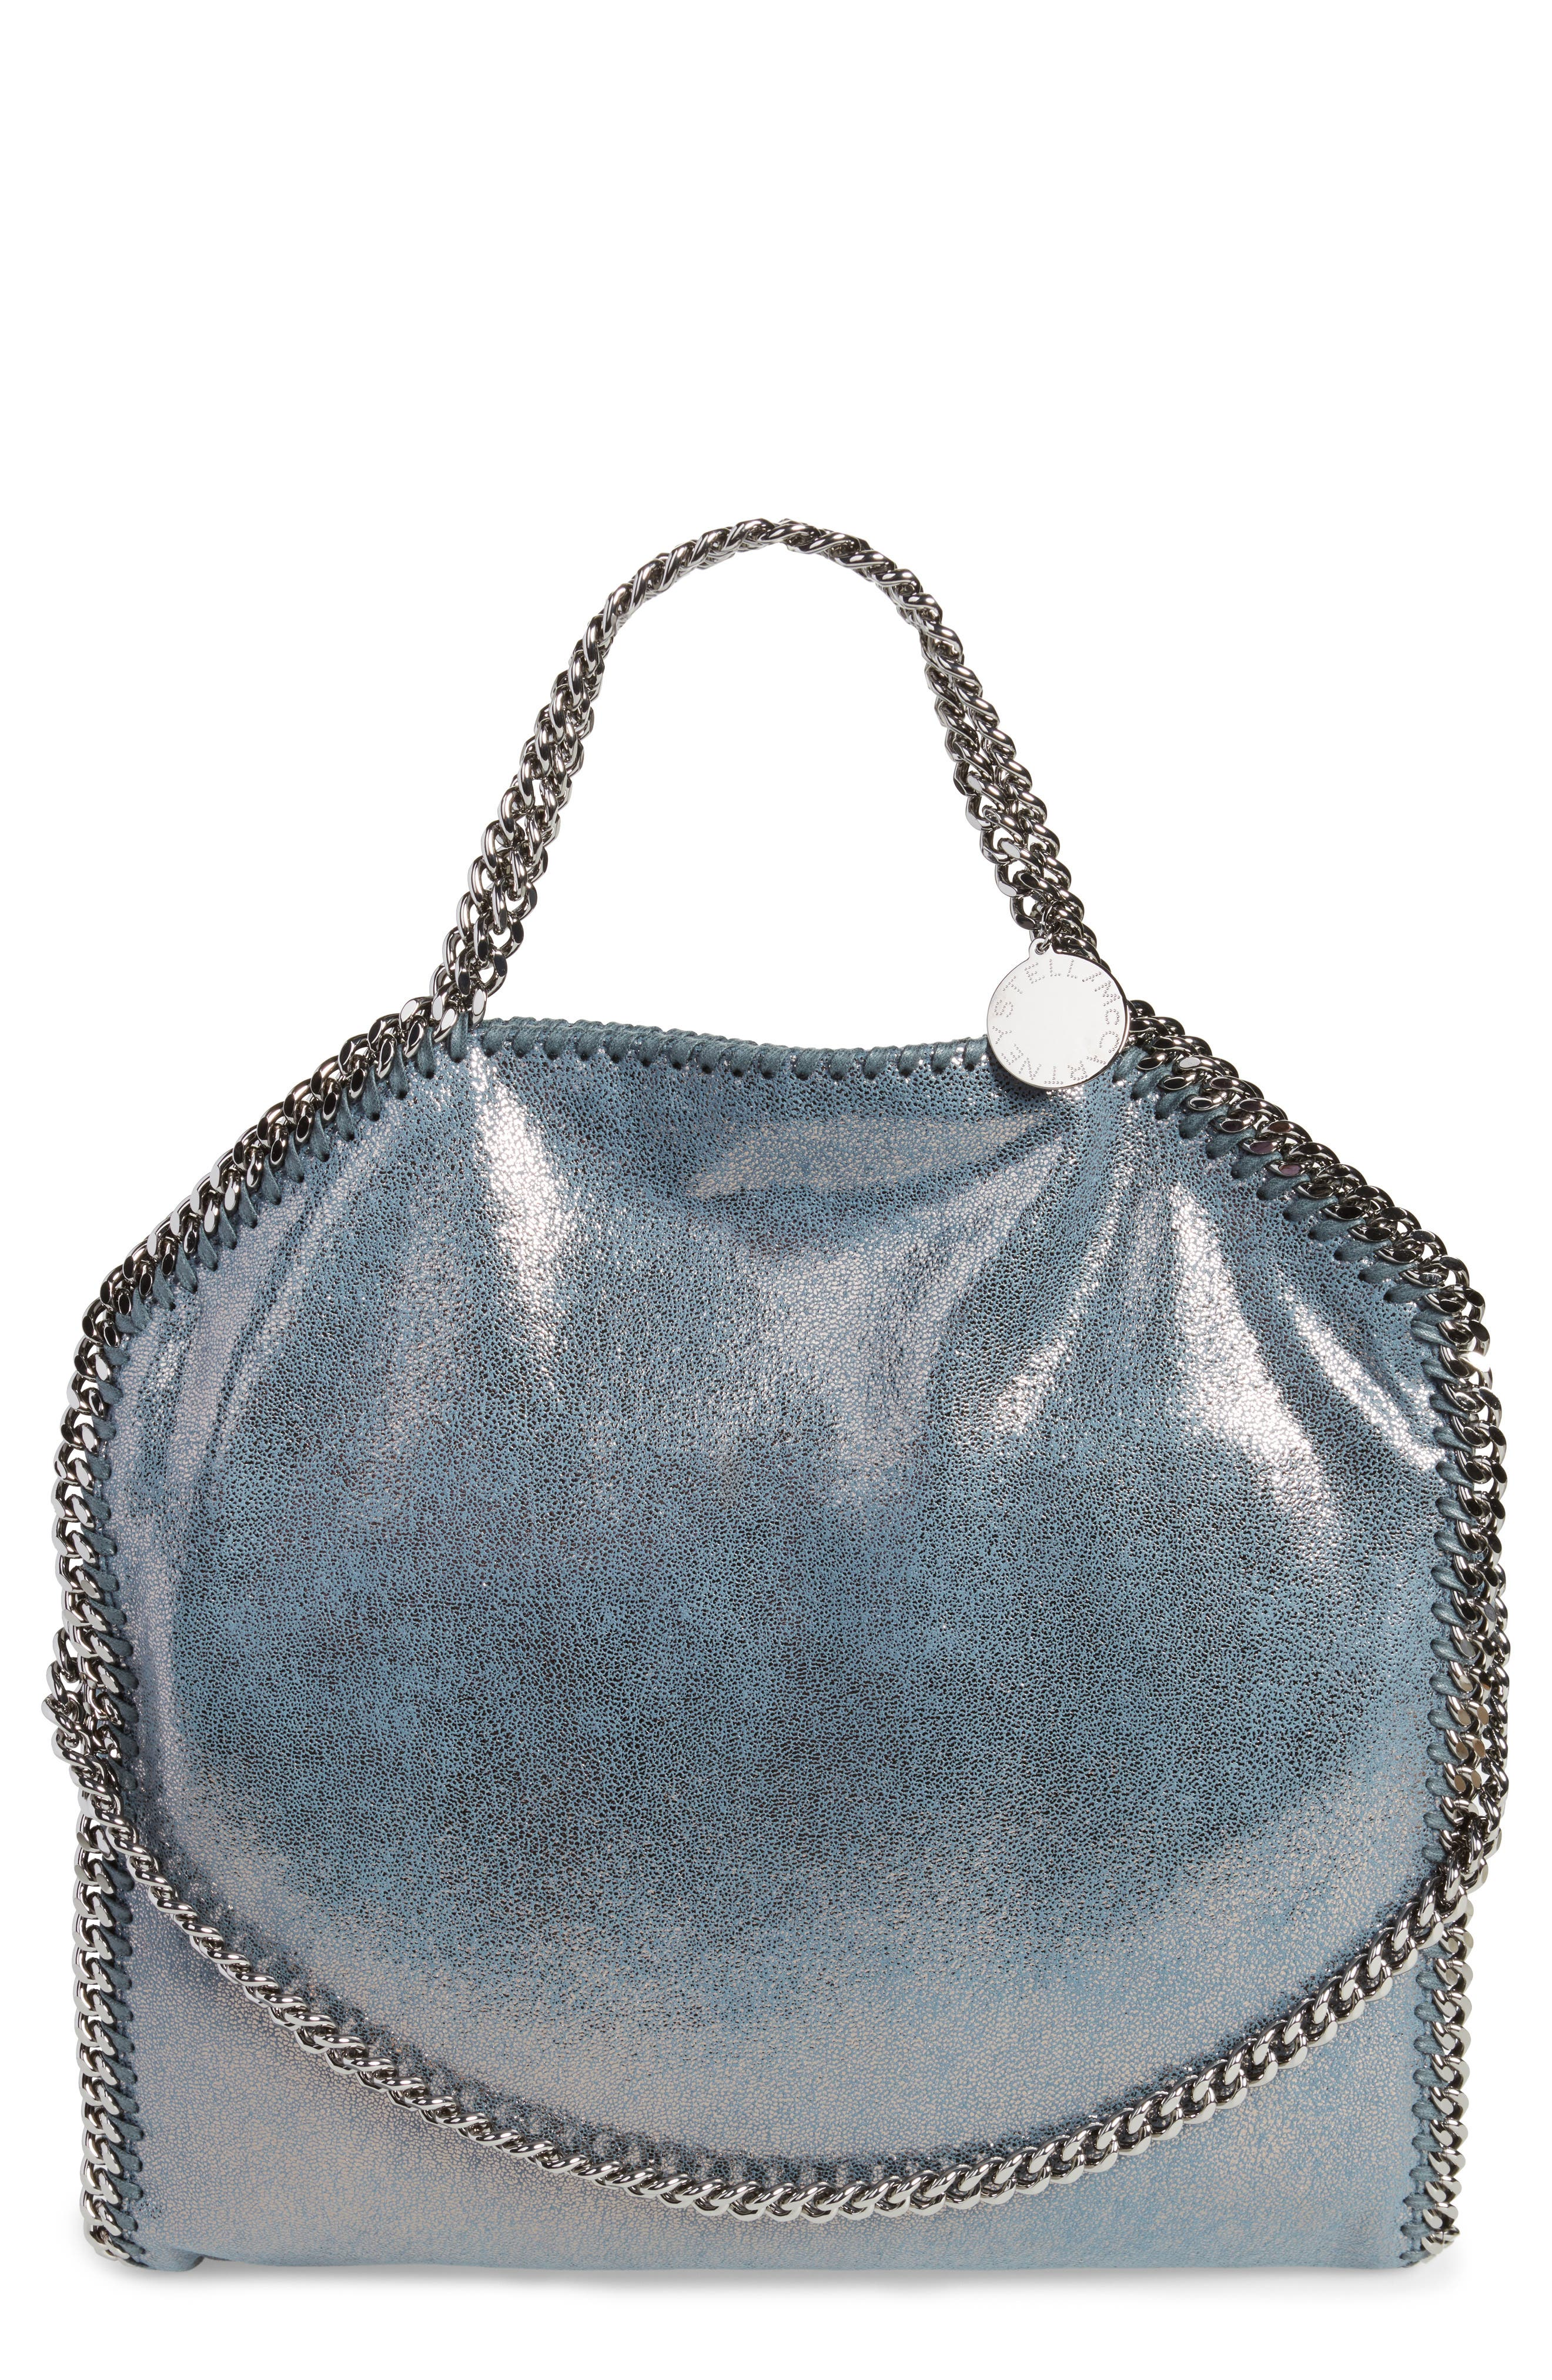 Stella Mccartney Falabella Shaggy Deer Metallic Faux Leather Tote - Blue In  Blue Lagoon 809f676770